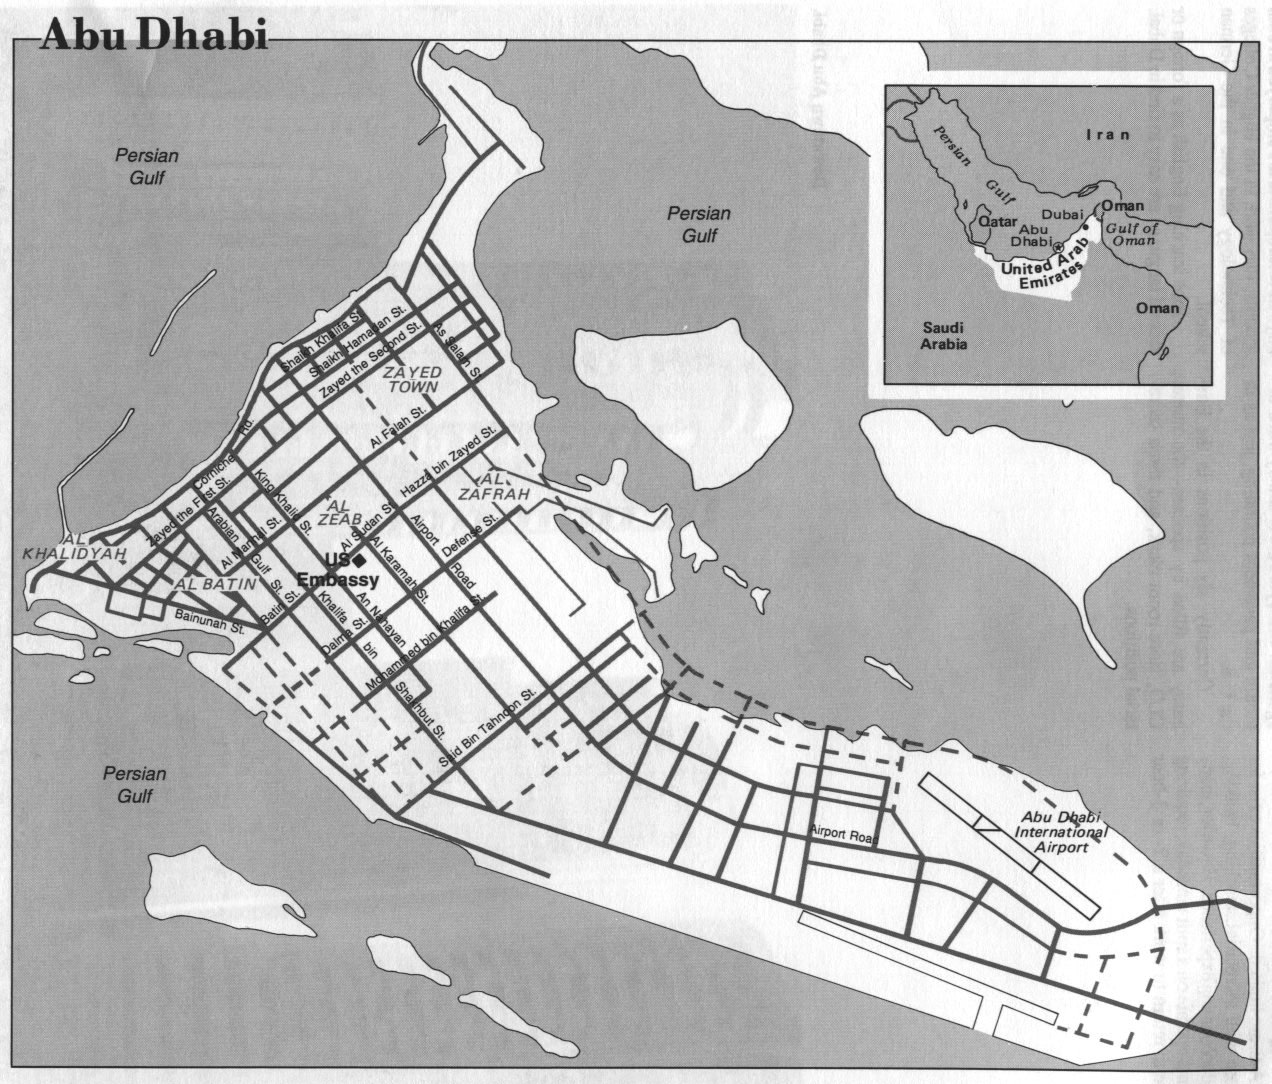 Abu Dhabi City Map Abu Dhabi mappery